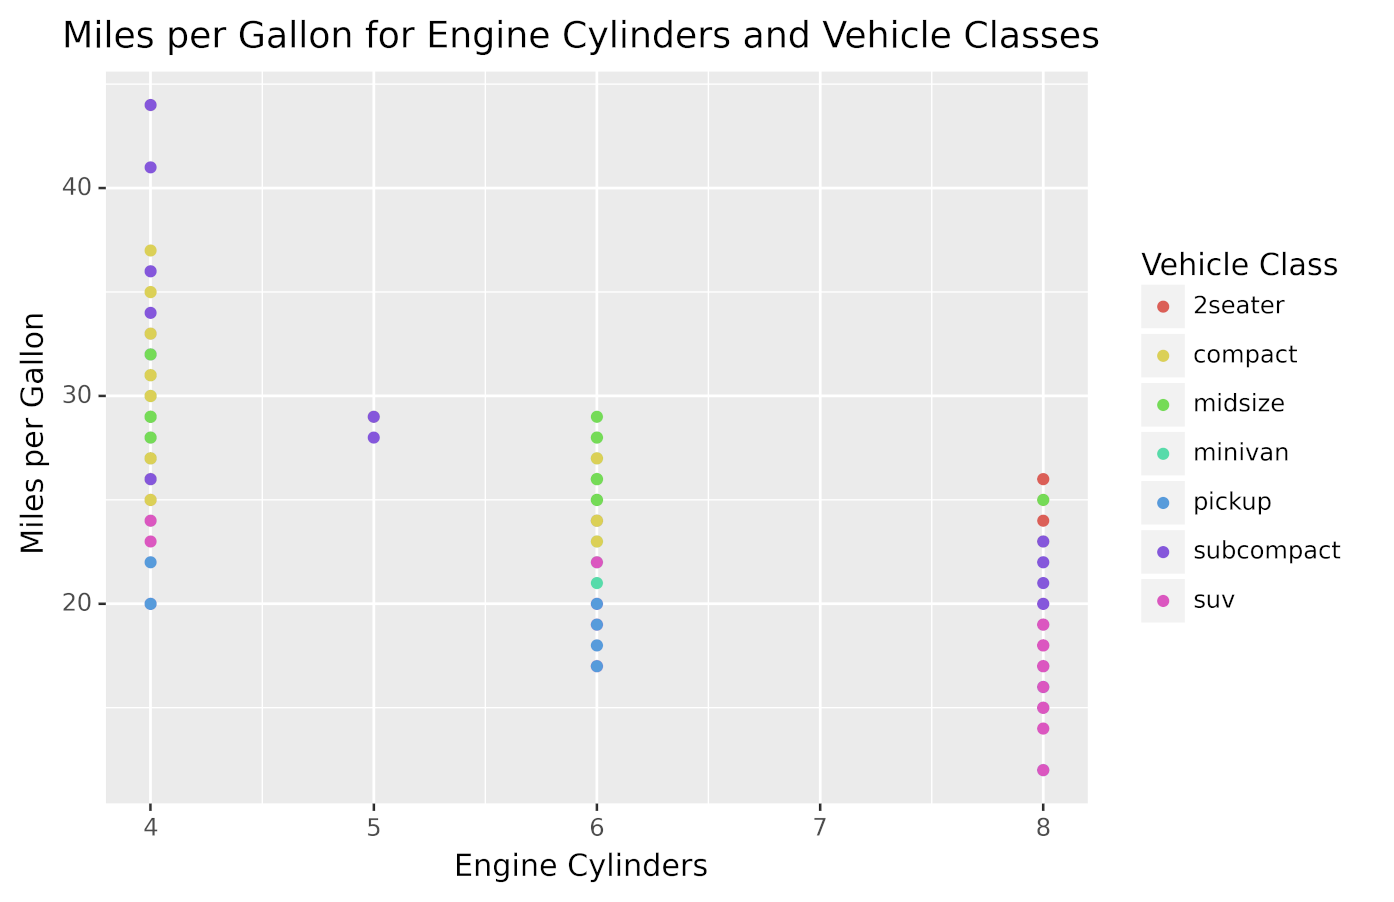 Plot using colors to represent vehicle classes